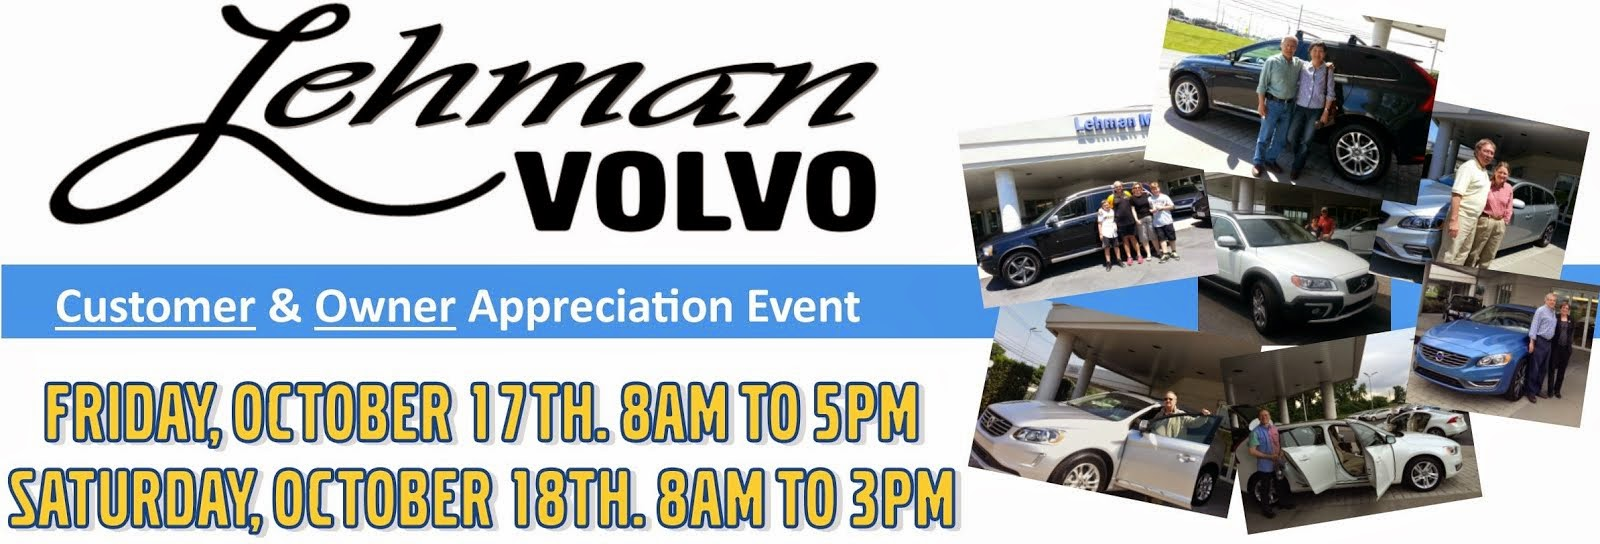 Lehman Motors Volvo Customer and Owner Appreciation Event